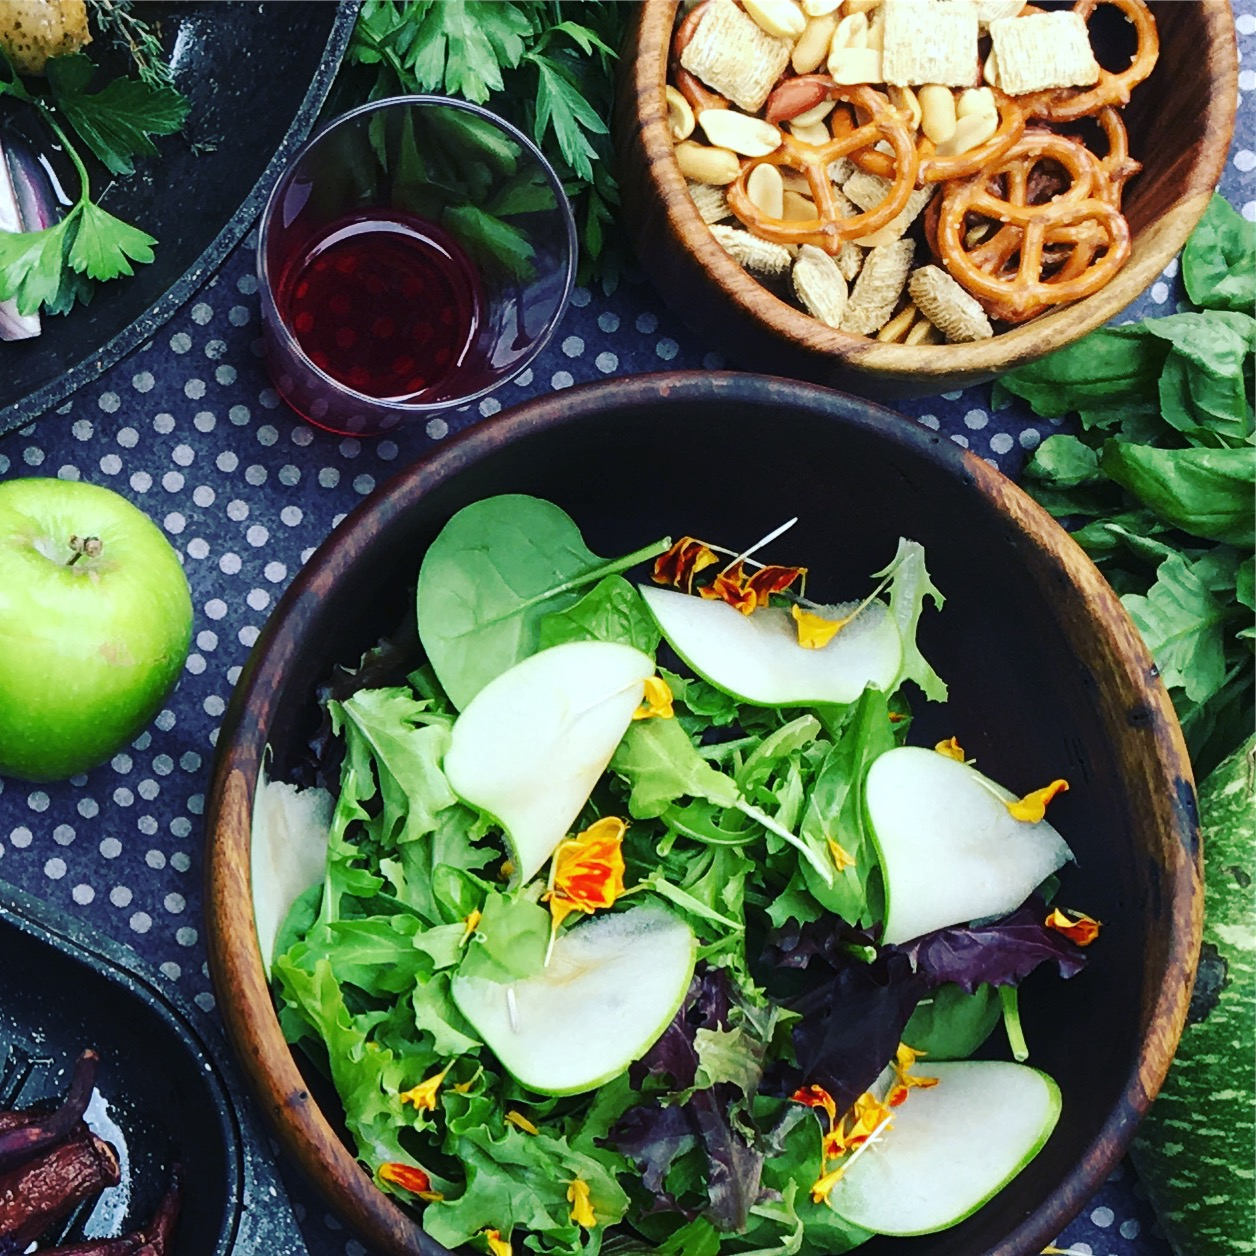 Think about contrast in texture, color, and ingredients. This salad has finely-sliced, ripe apples, mixed greens for color and texture variation, edible flowers. By itself, all this tastes delicious and fresh. But it also contrasts the sausages ...